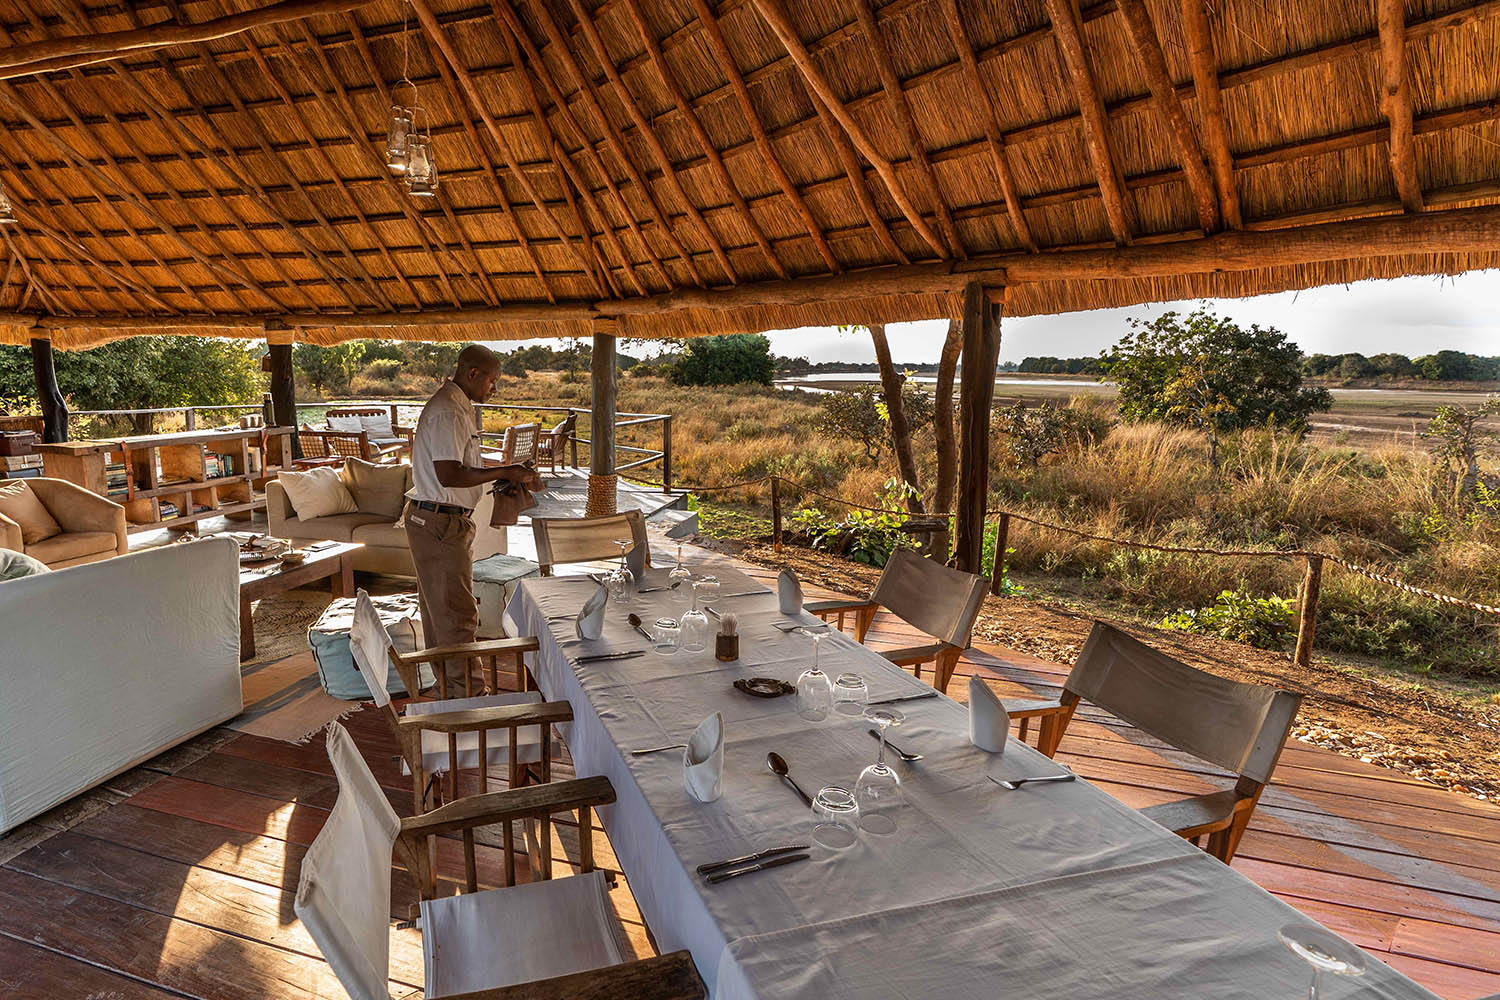 kakuli-beautiful-camp-lodge-zambia-in-style-tours-safari-packages-lodges-south-luangwa-national-park-fine-dining